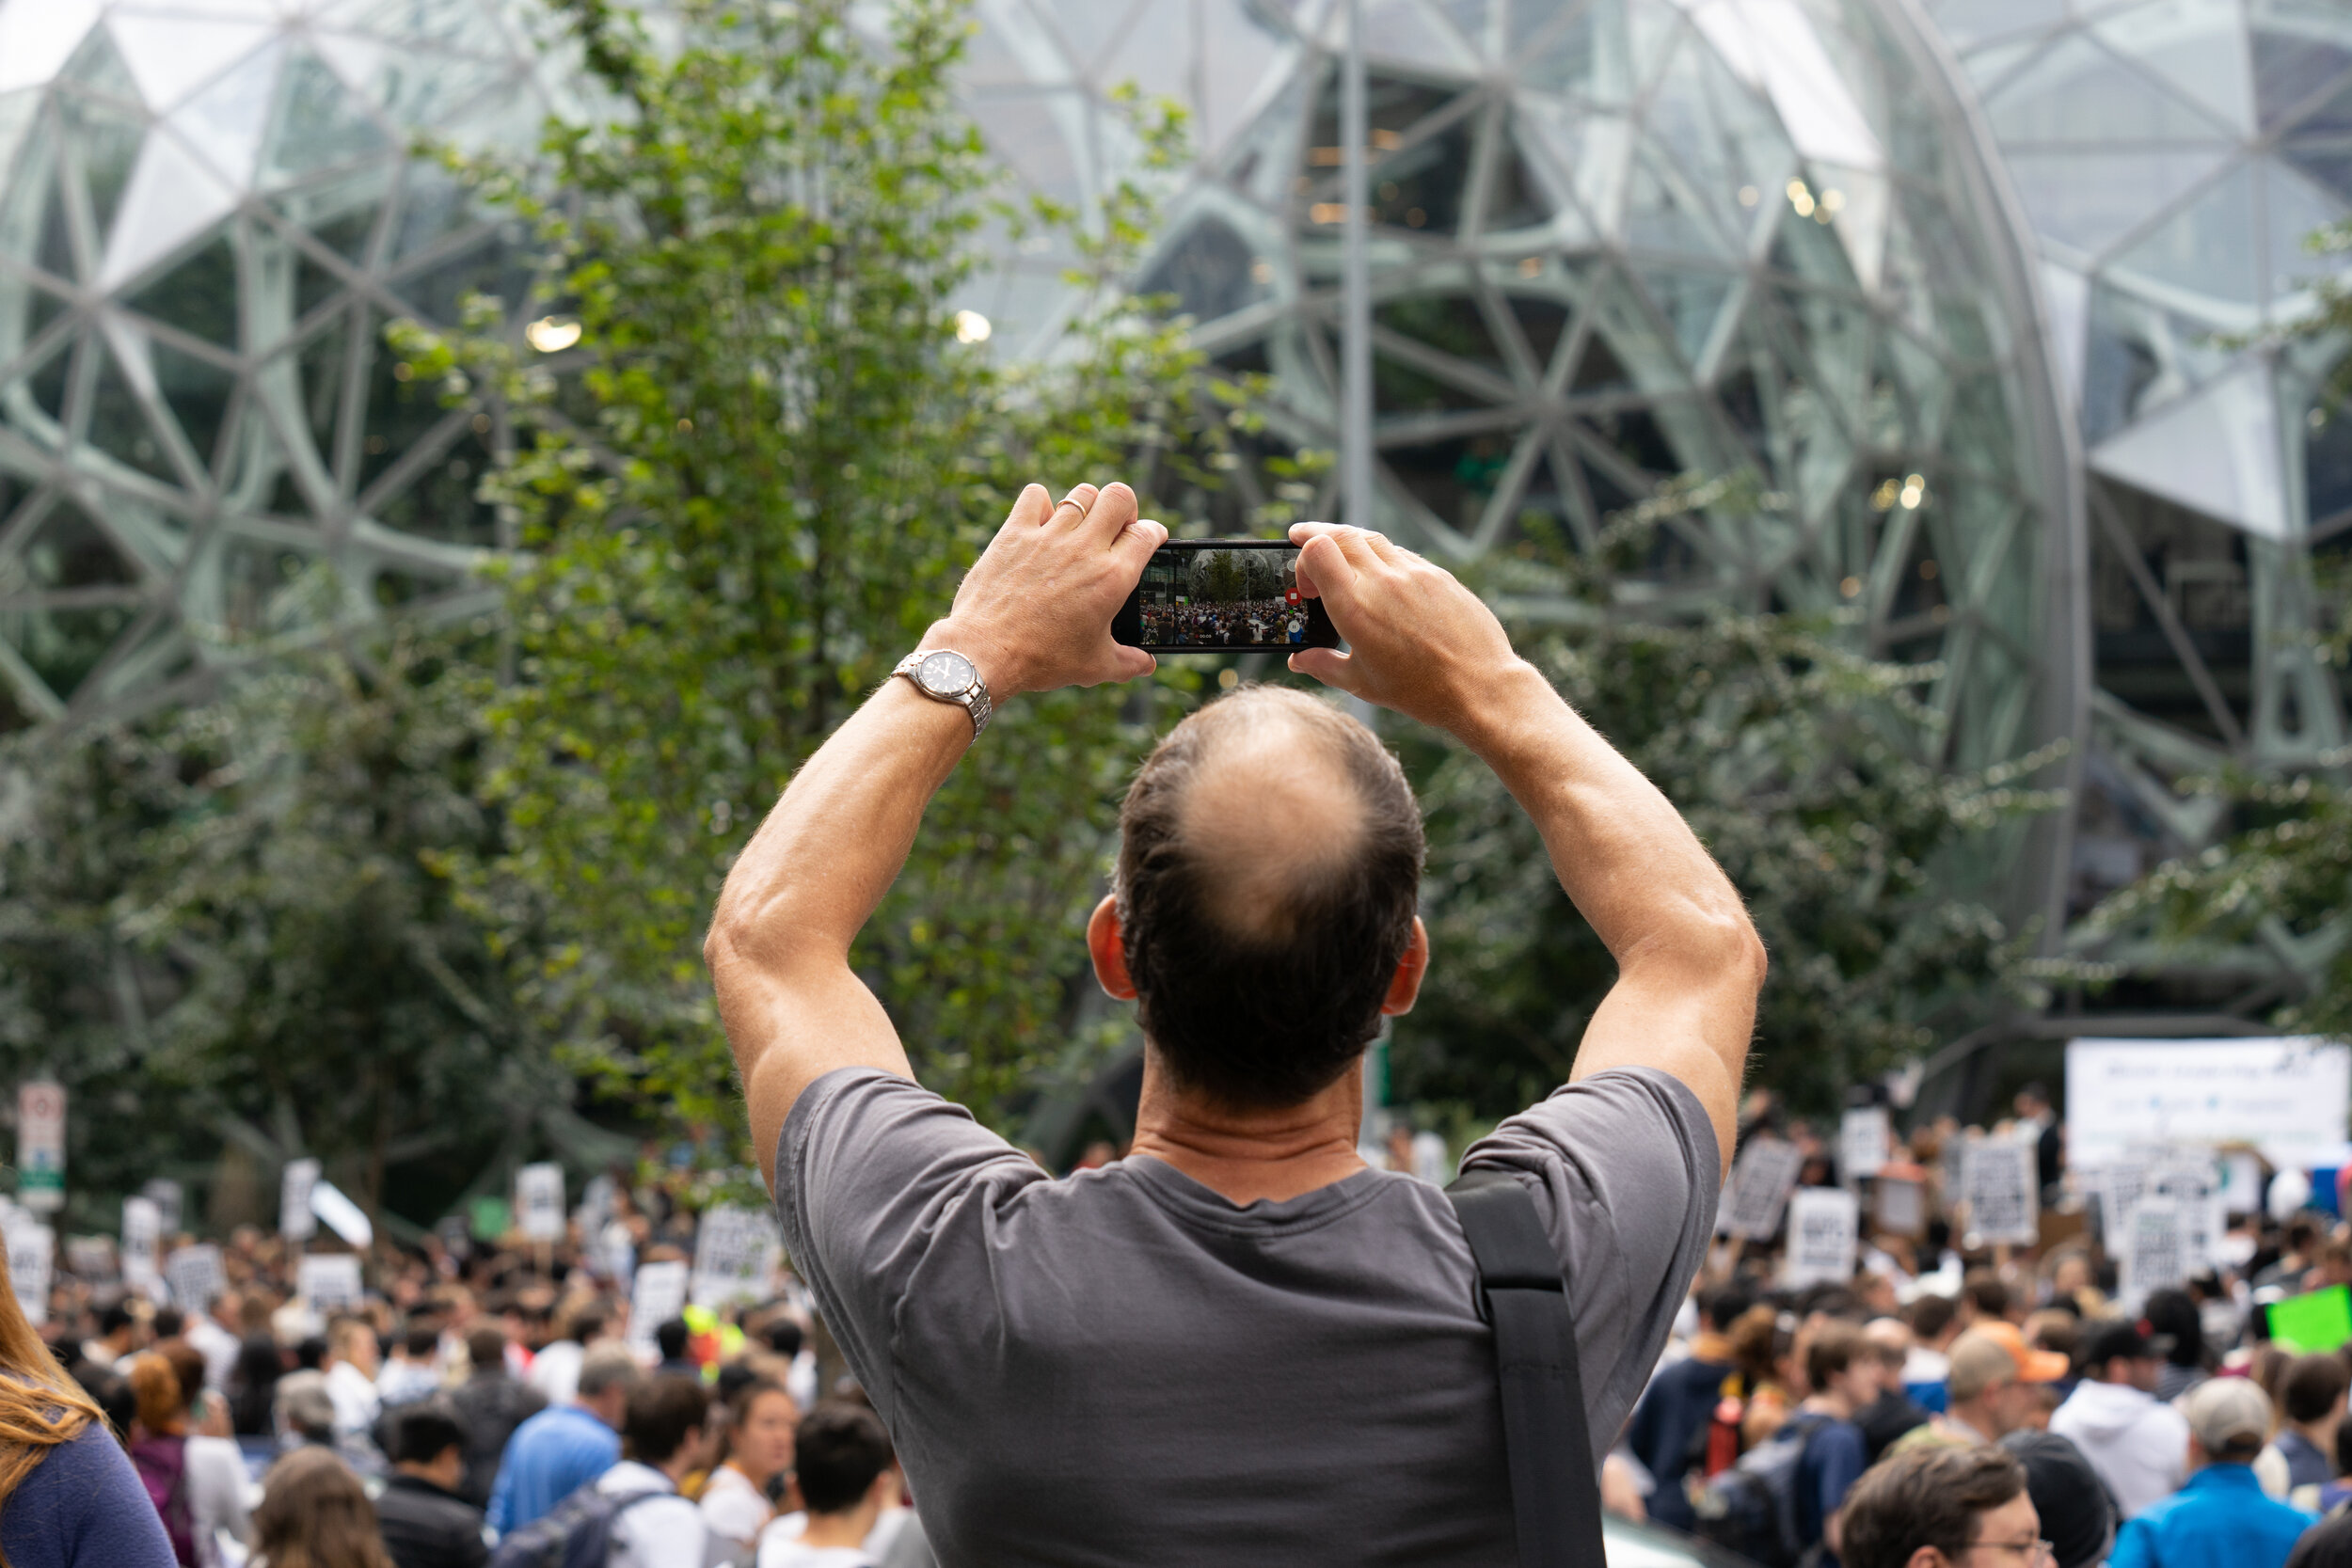 An Amazon.com Inc. Employee take a photo of the crowd outside the company's headquarters during the Global Climate Strike in Seattle, Washington, U.S., on Friday, Sept. 20, 2019 (Bloomberg)